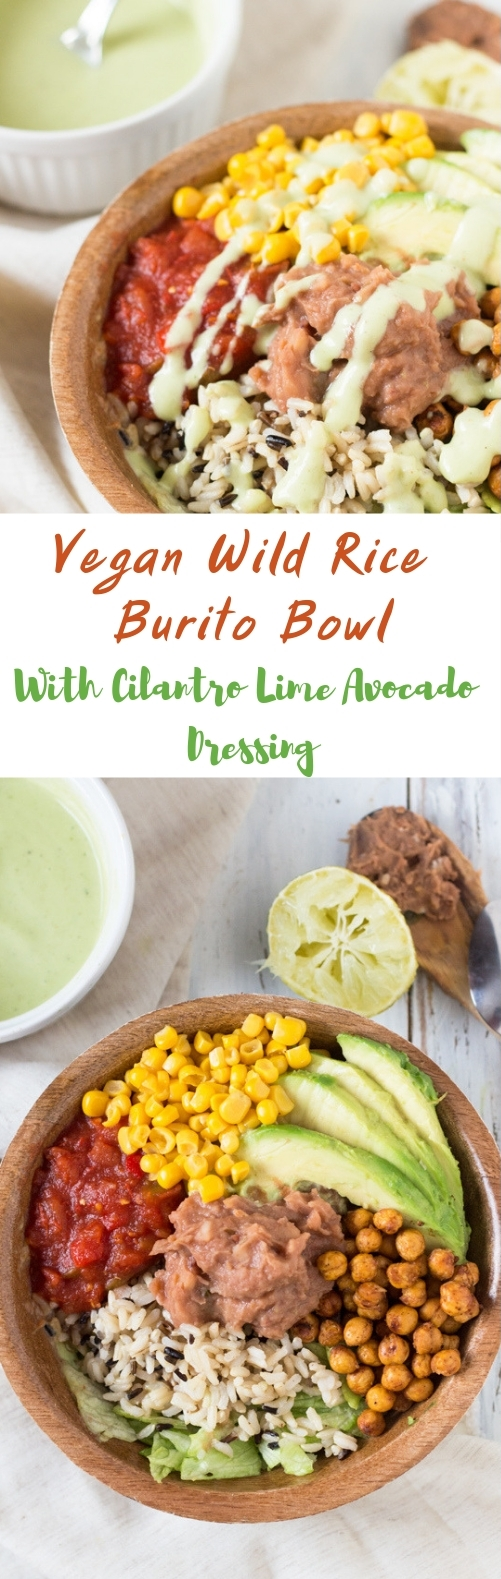 WILD RICE BURRITO BOWL WITH CILANTRO-LIME AVOCADO DRESSING #veganmeal #healthy